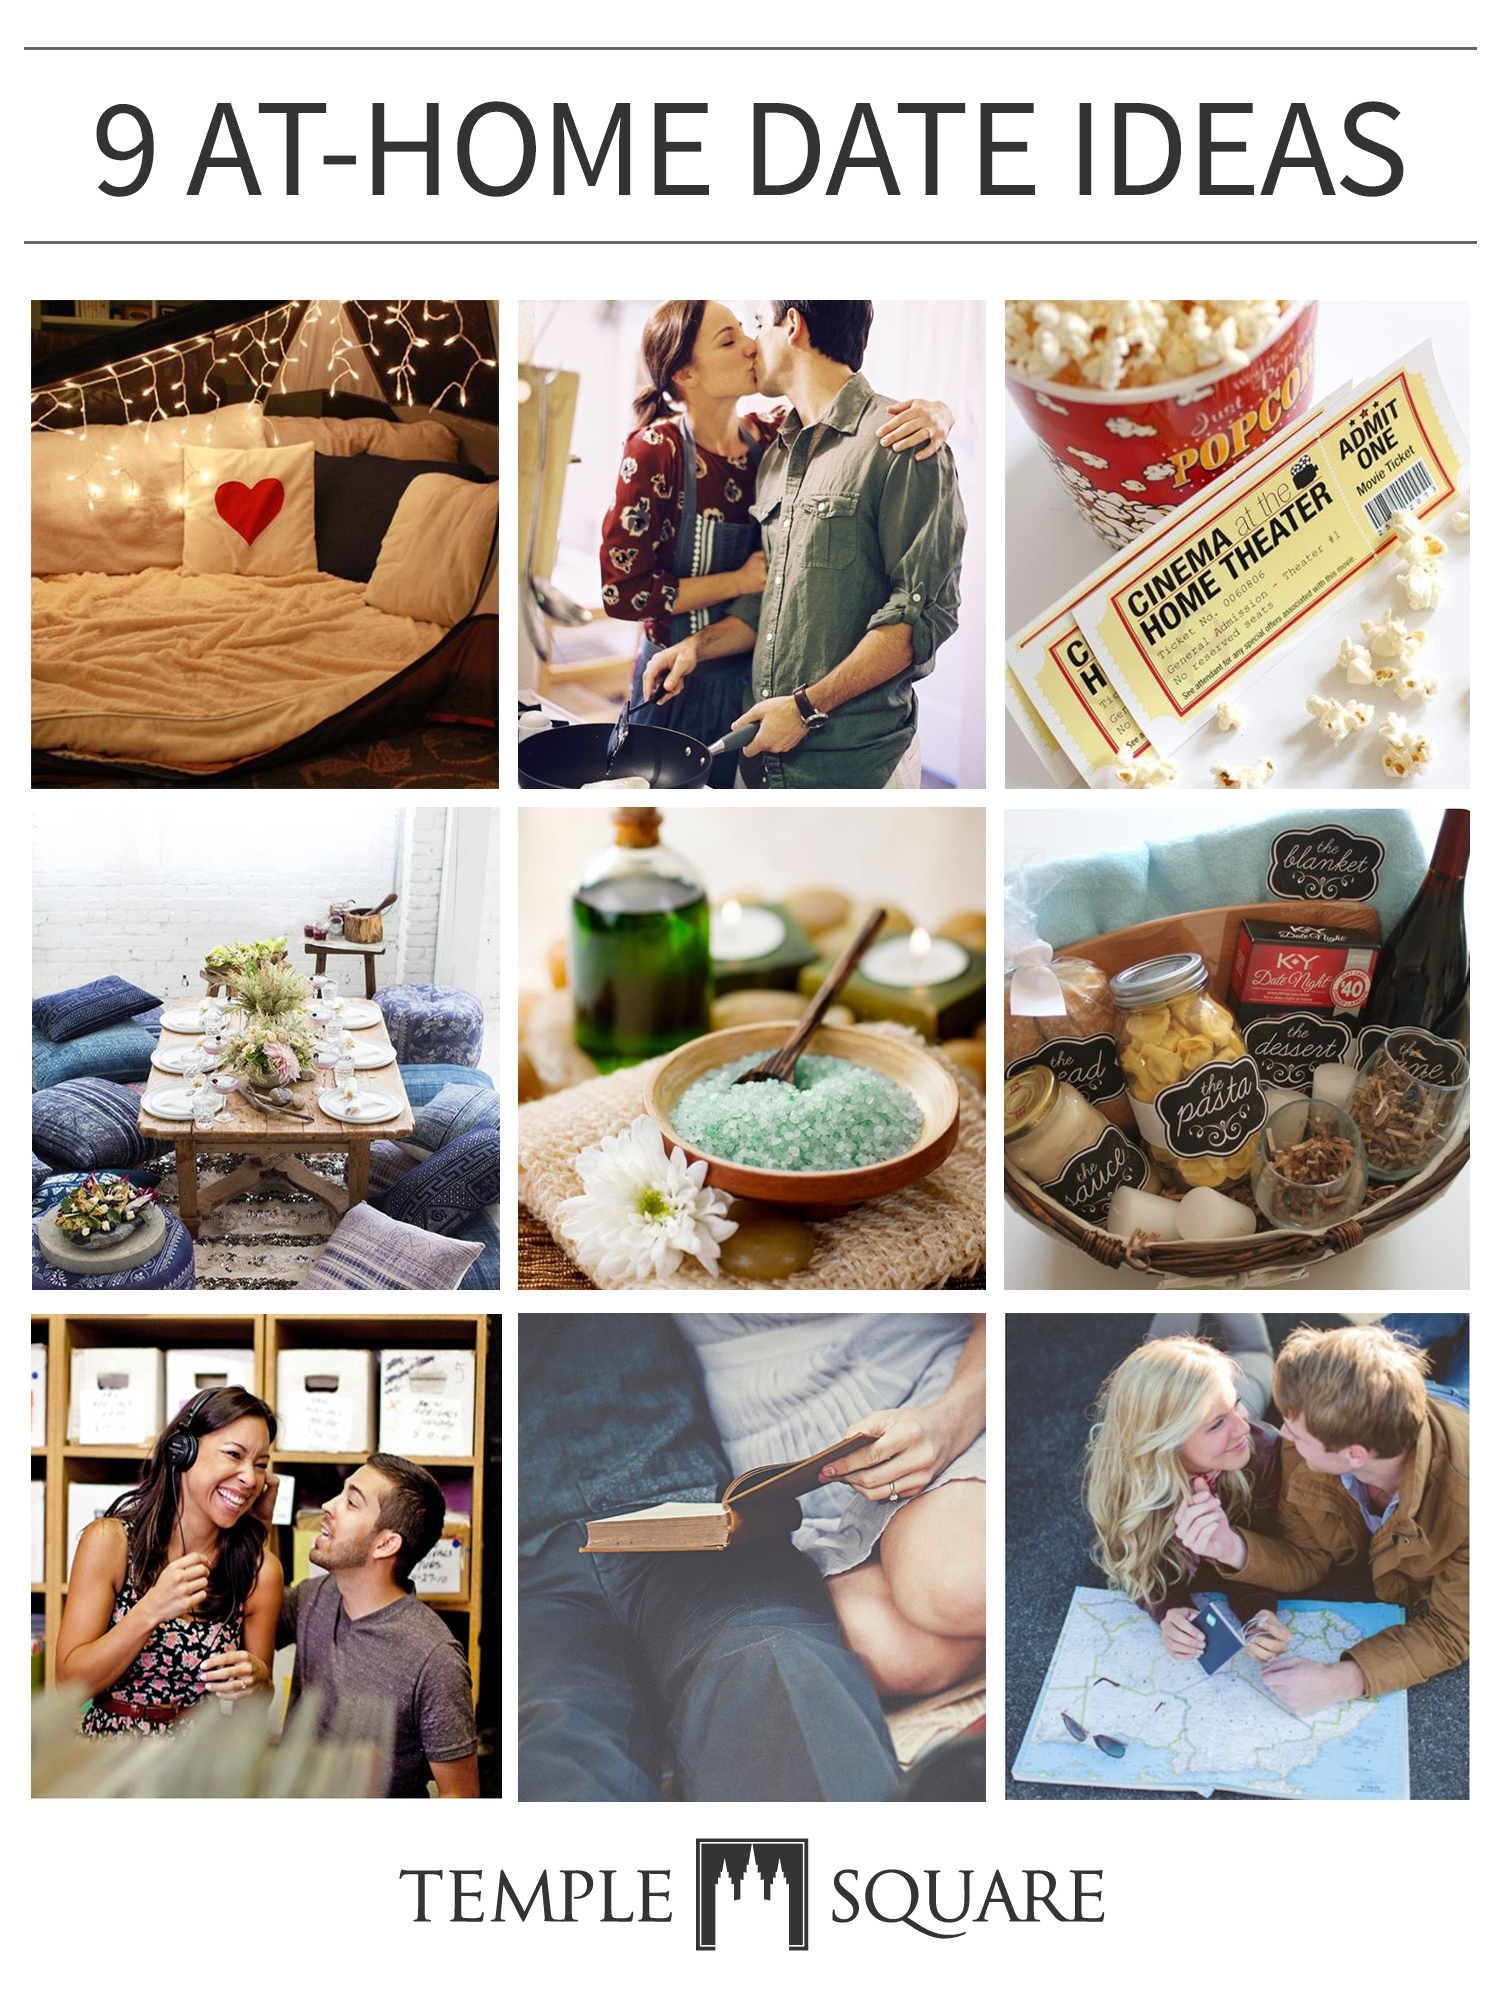 10 Lovely Date Ideas For Rainy Days 9 at home date ideas crafts 2020